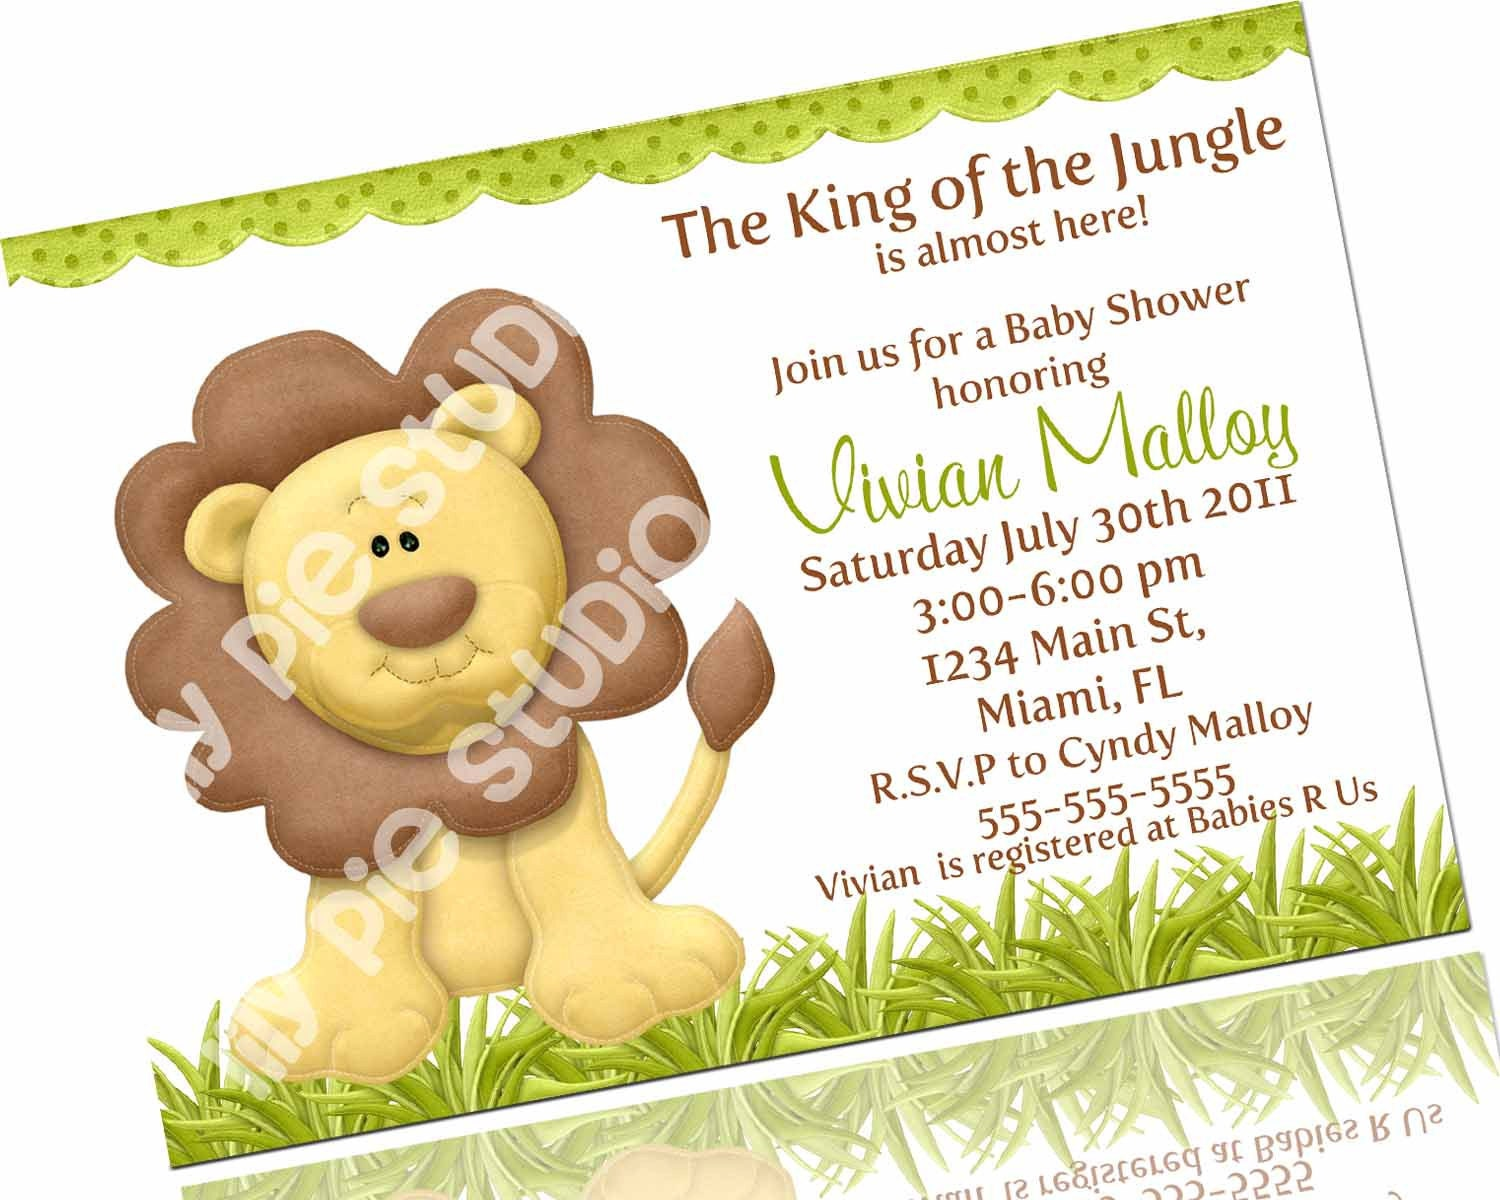 King Of The Jungle Baby Shower Invitations for beautiful invitation template